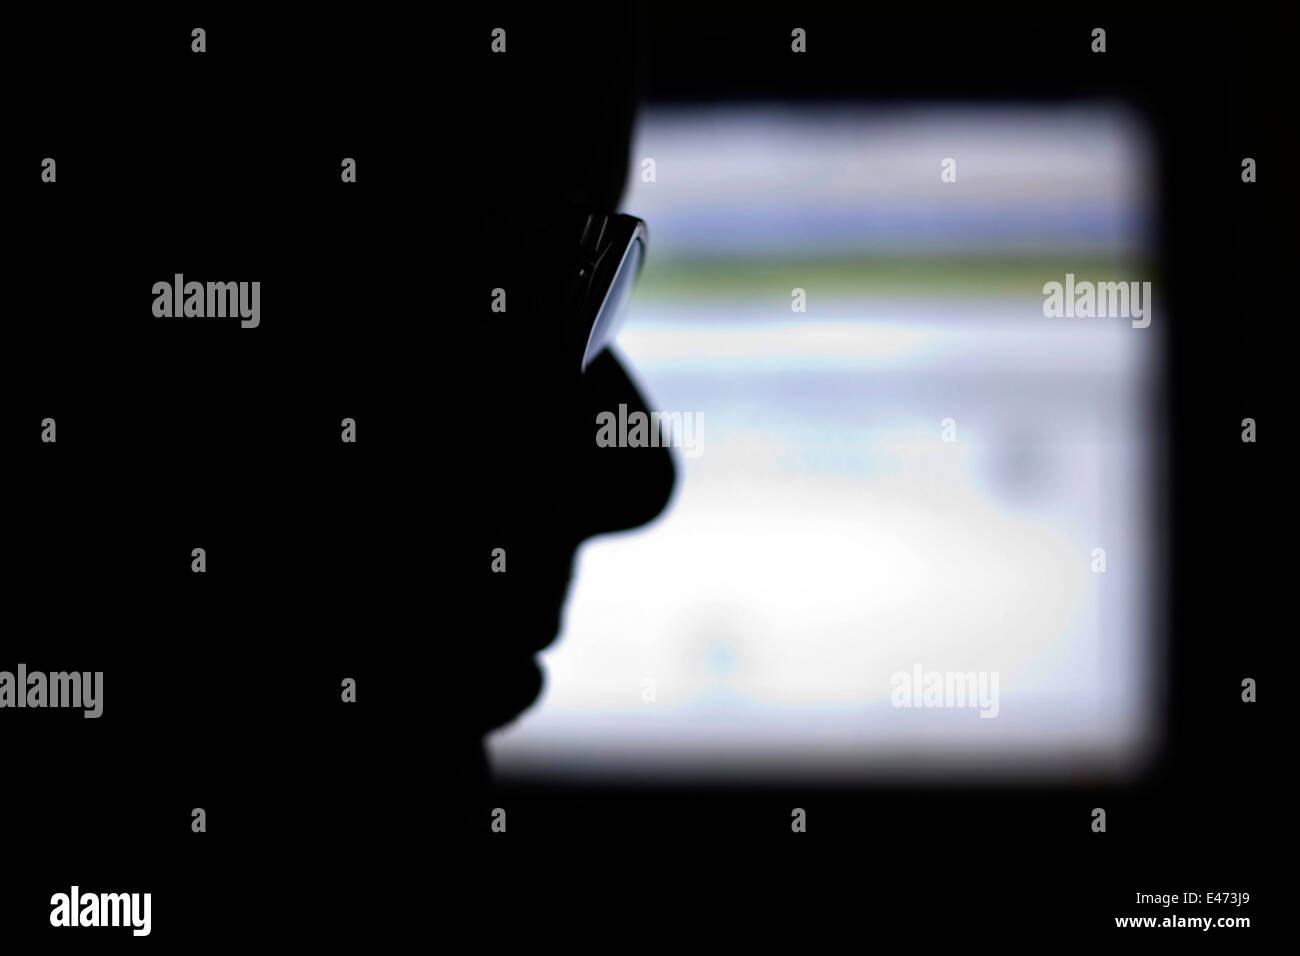 An irrecognizeable man silhouettte near a computer screen. - Stock Image